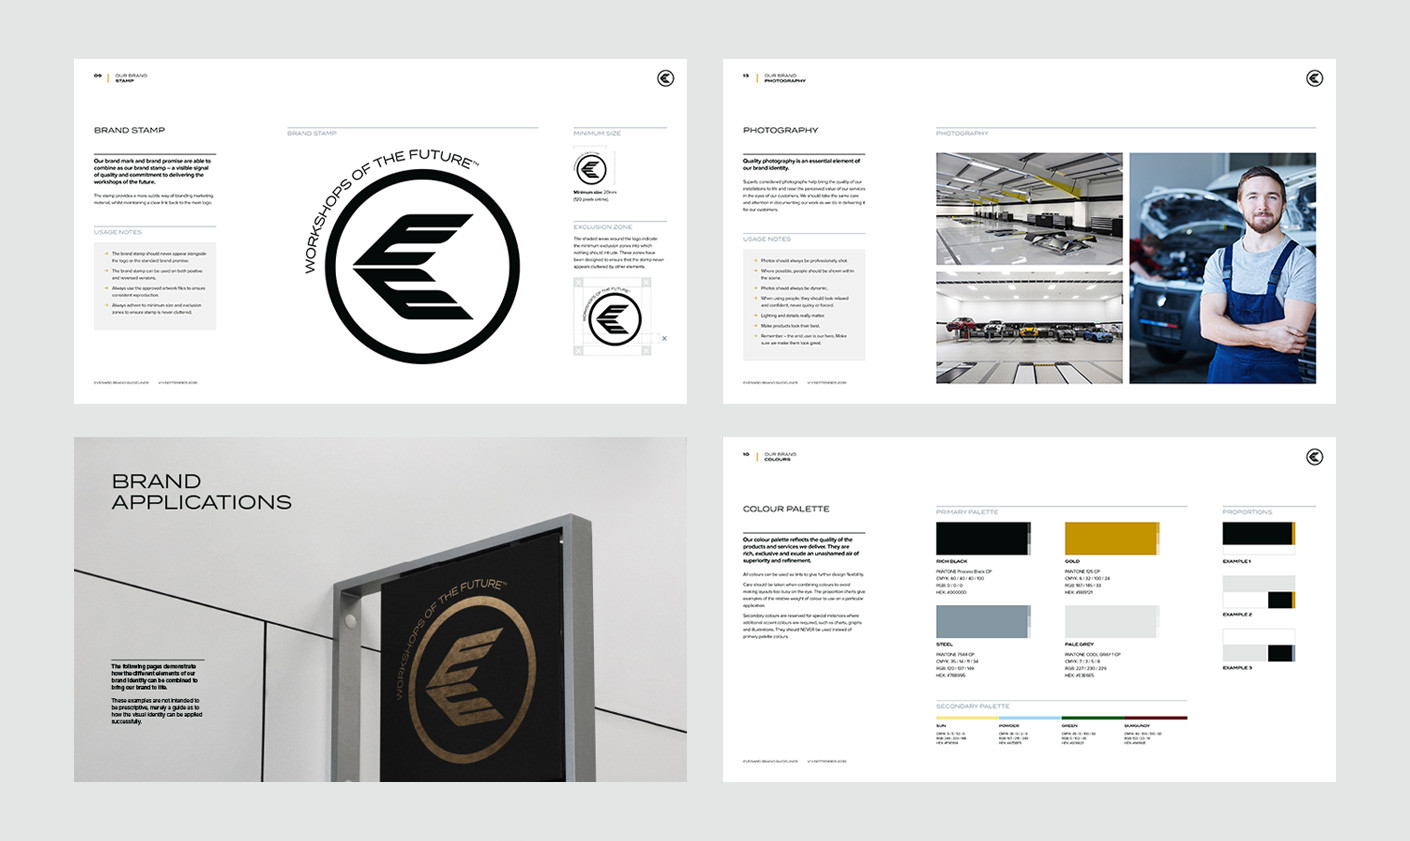 Everard brand guidelines